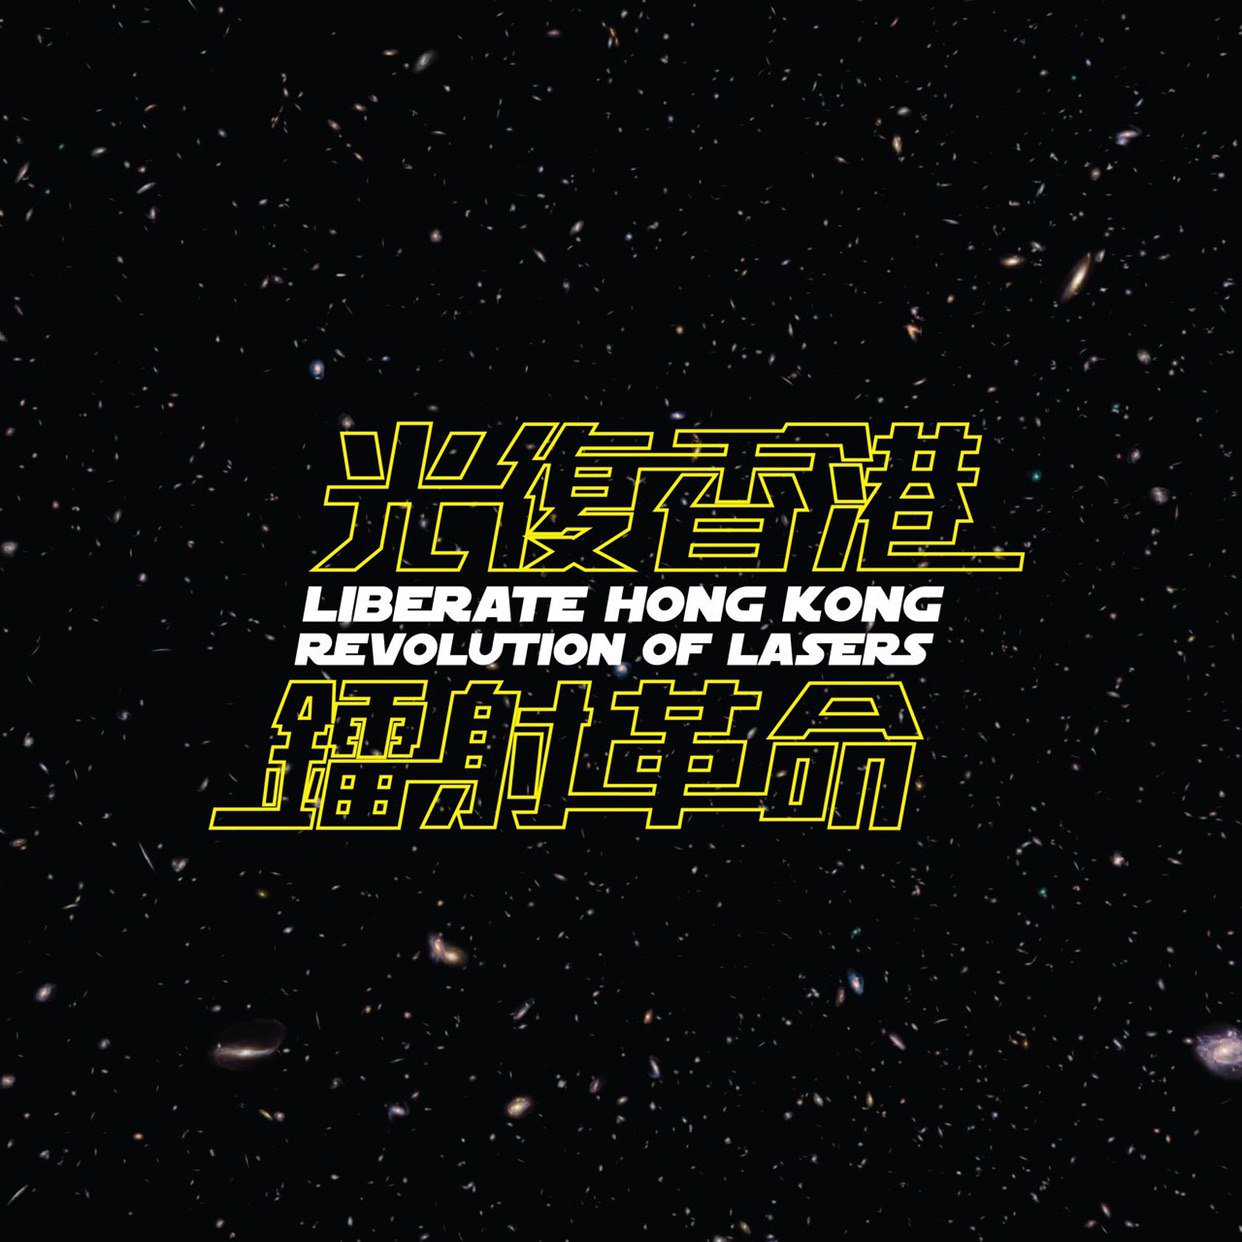 Yellow-outlined Chinese text, and an English translation of the same, overlaid on an image of galaxies in reference to the Star Wars logo. Text reads: Liberate Hong Kong, Revolution of Lasers